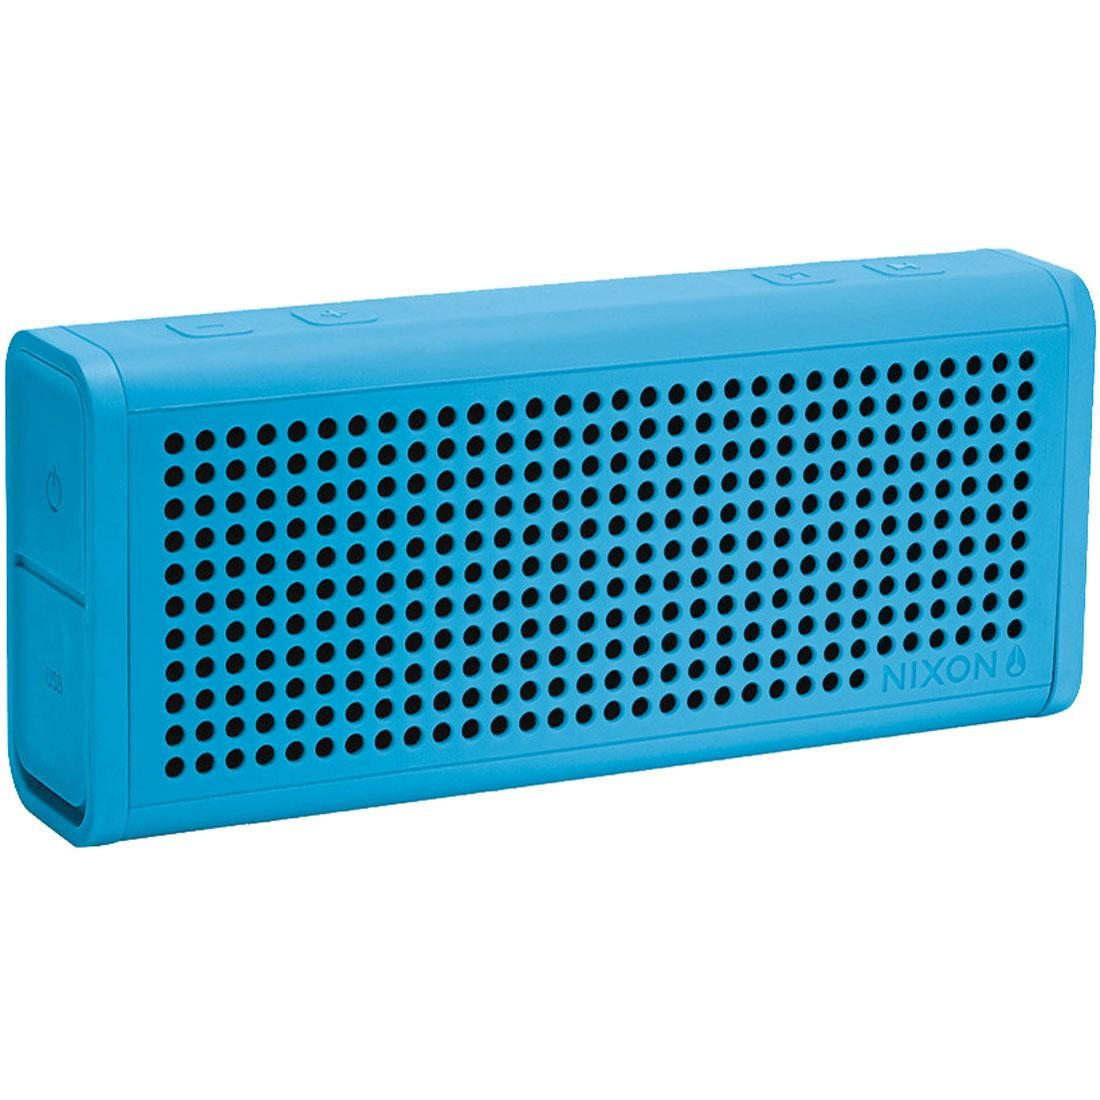 Nixon The Blaster Portable Wireless Speaker (sky blue)